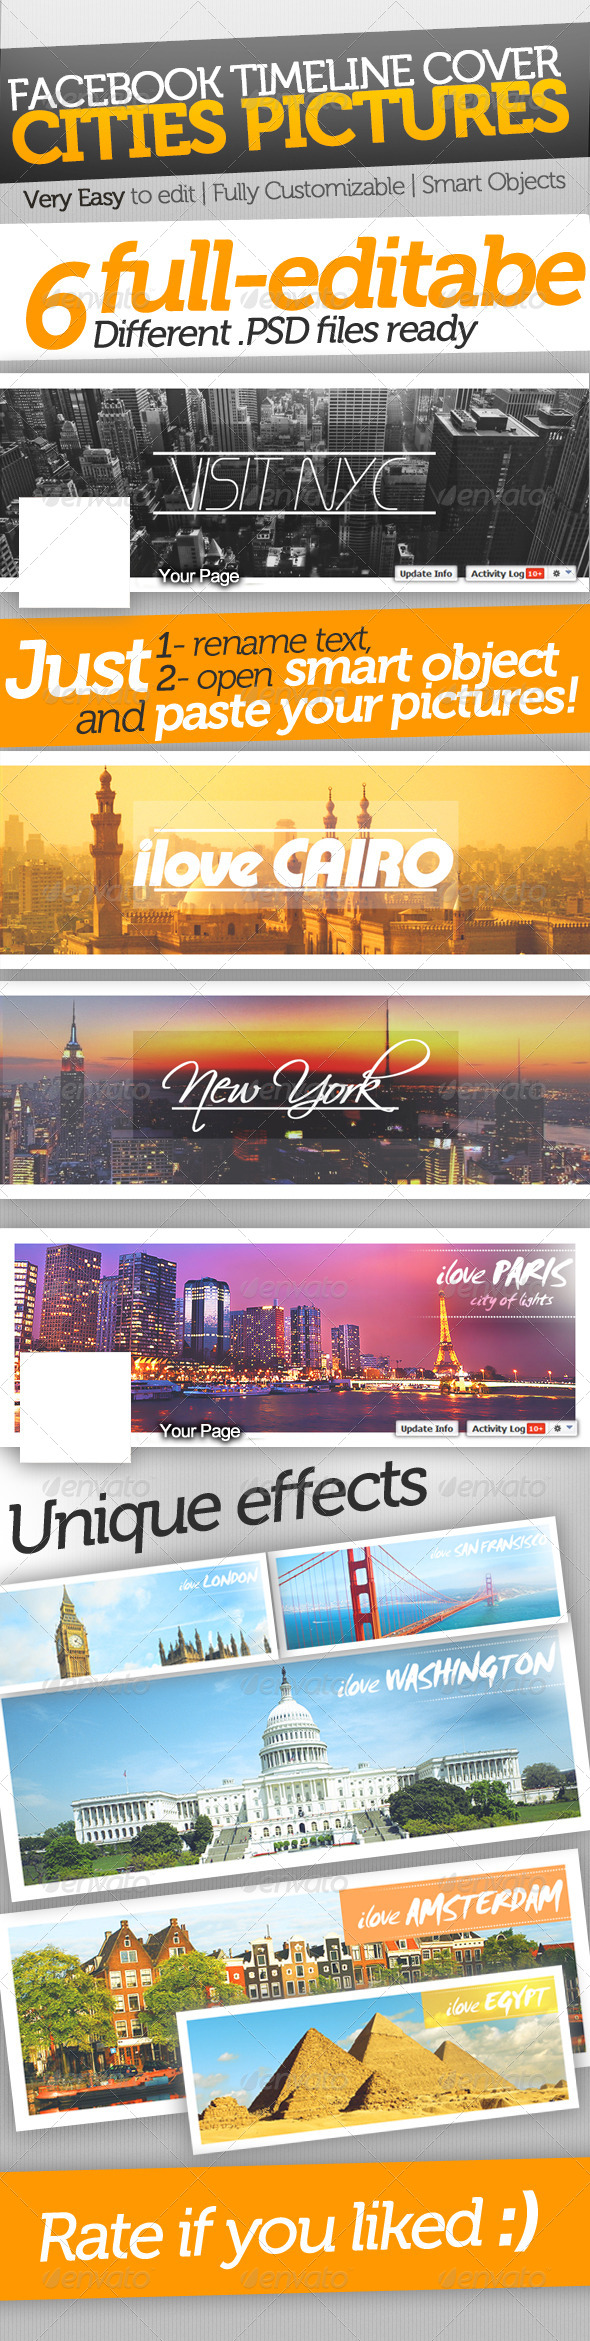 World Cities Facebook Timeline Covers   #GraphicRiver          World Cities Facebook Timeline Covers     Timeline Size 851×315px  Fully-Customizable.  Easy-Editable.  Organized Layers.  Easy-Editable. Smart Objects, just open smart object and paste your picture. Photos in preview are not included in main file.   851×315px.     Fonts download links:     .dafont /scriptina.font   .fonts101 /fonts/view/Uncategorized/34727/Plain_Cred_1978   .fontpalace…